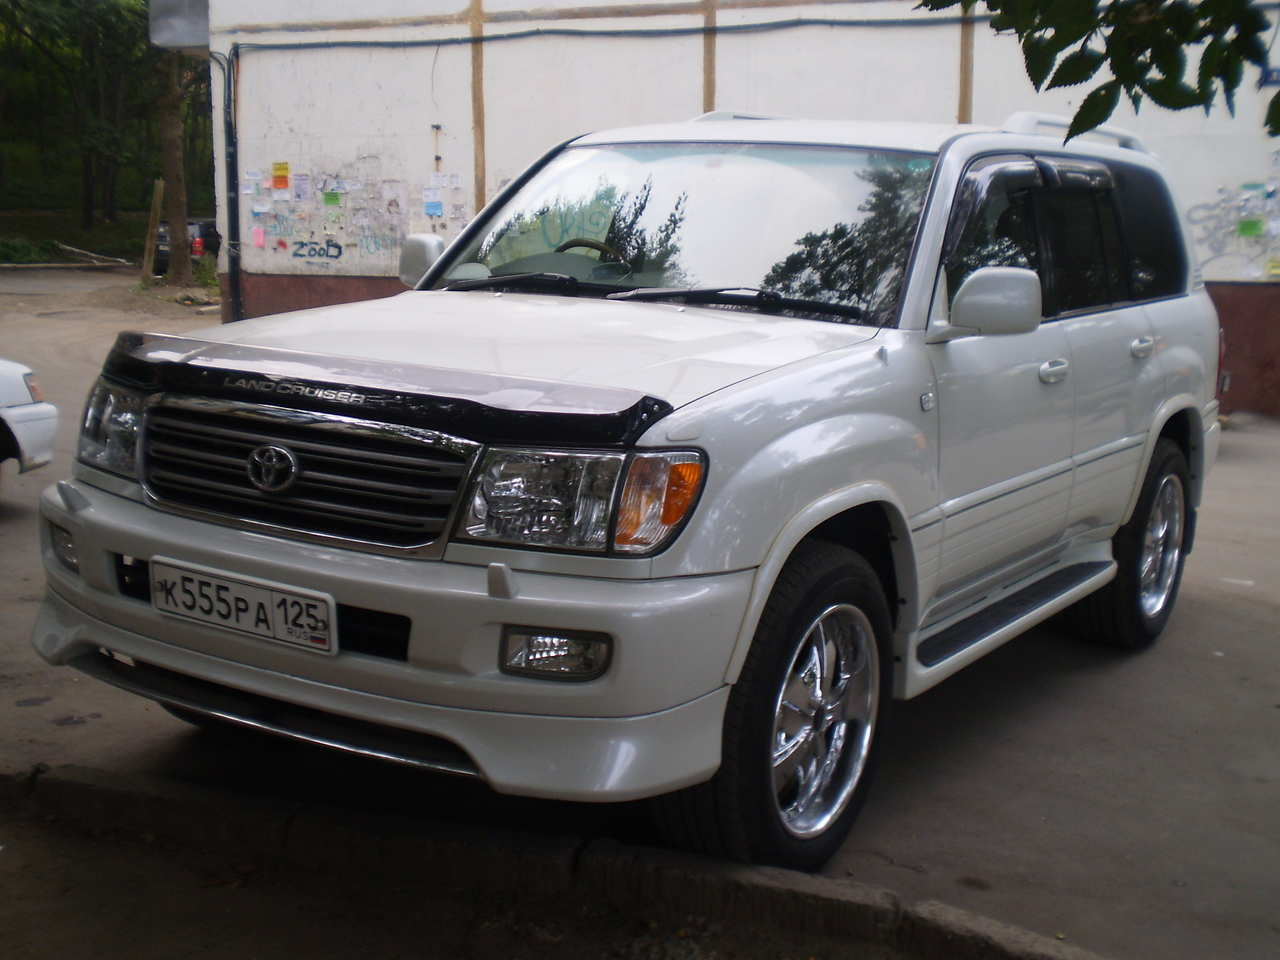 2004 toyota land cruiser for sale 4700cc gasoline automatic for sale. Black Bedroom Furniture Sets. Home Design Ideas